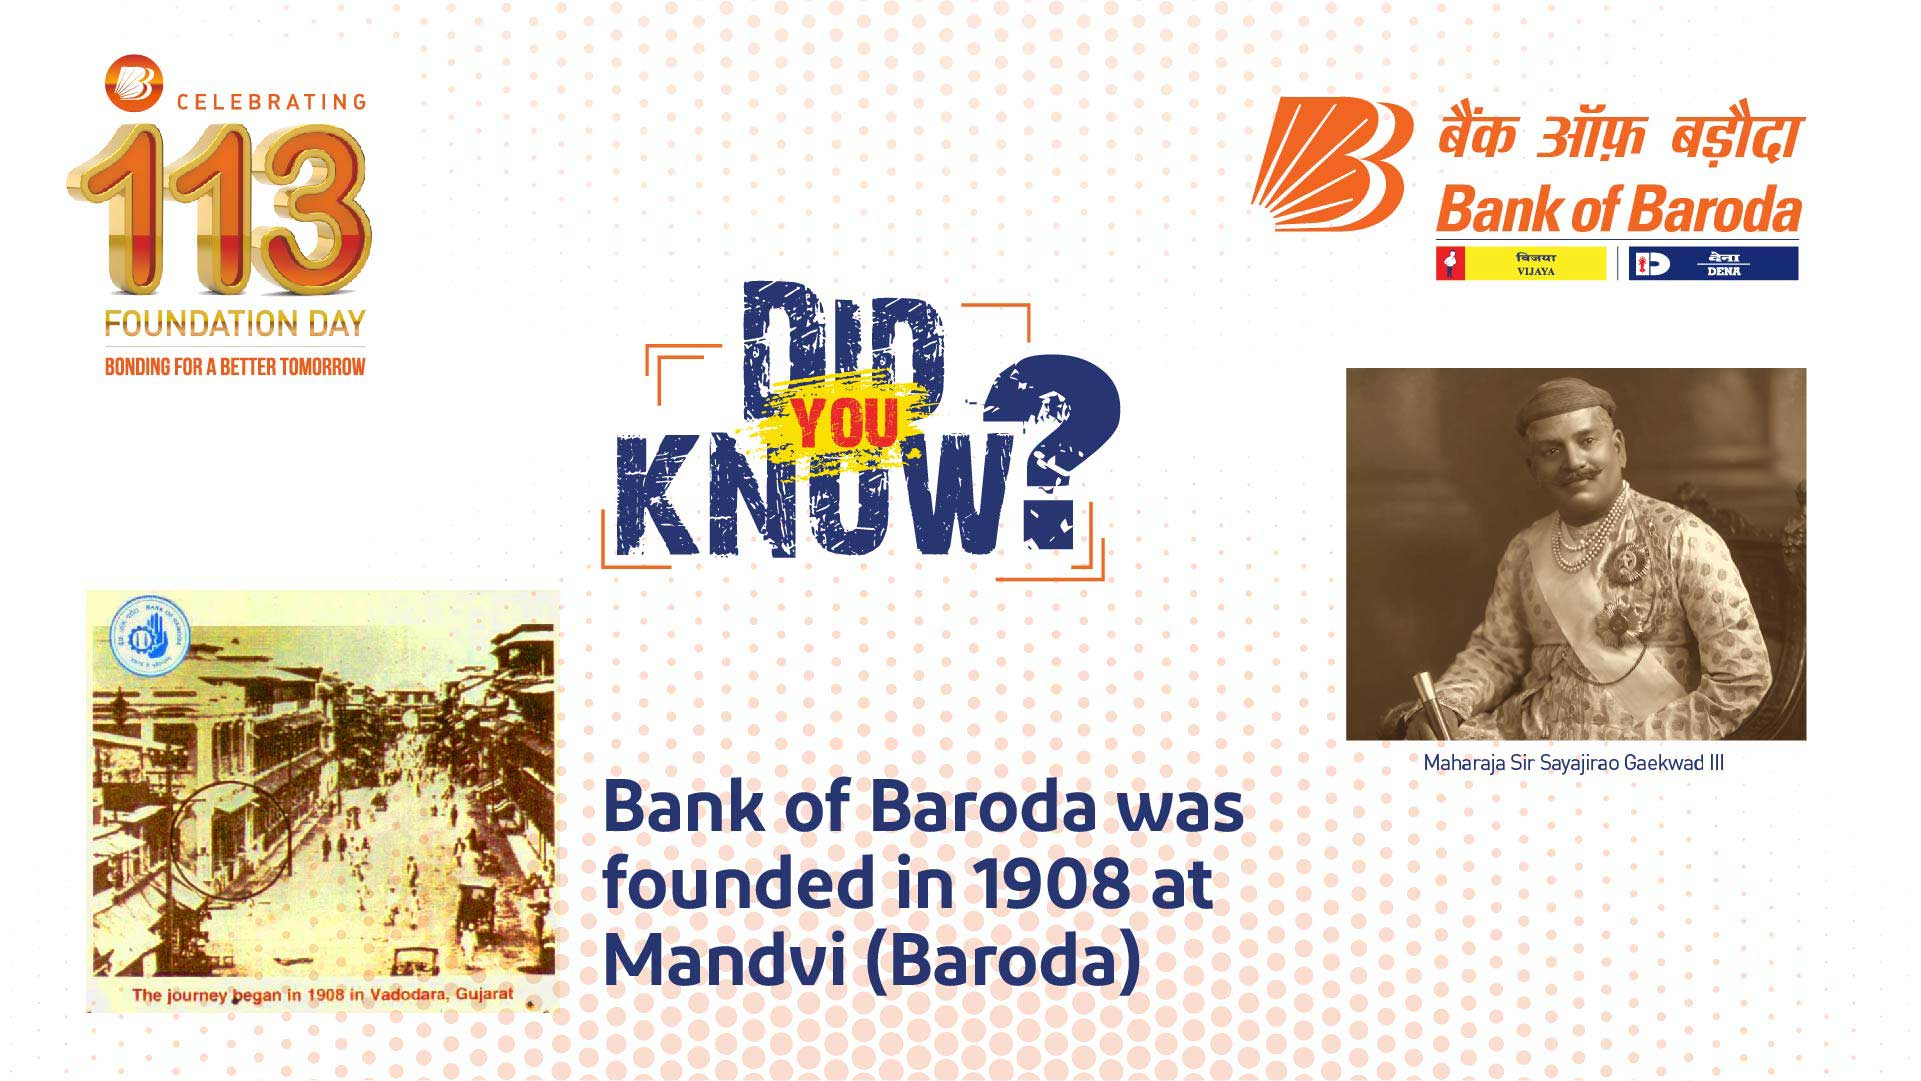 Did You Know? - Bank of Baroda was founded in 1908 at Mandvi (Baroda)